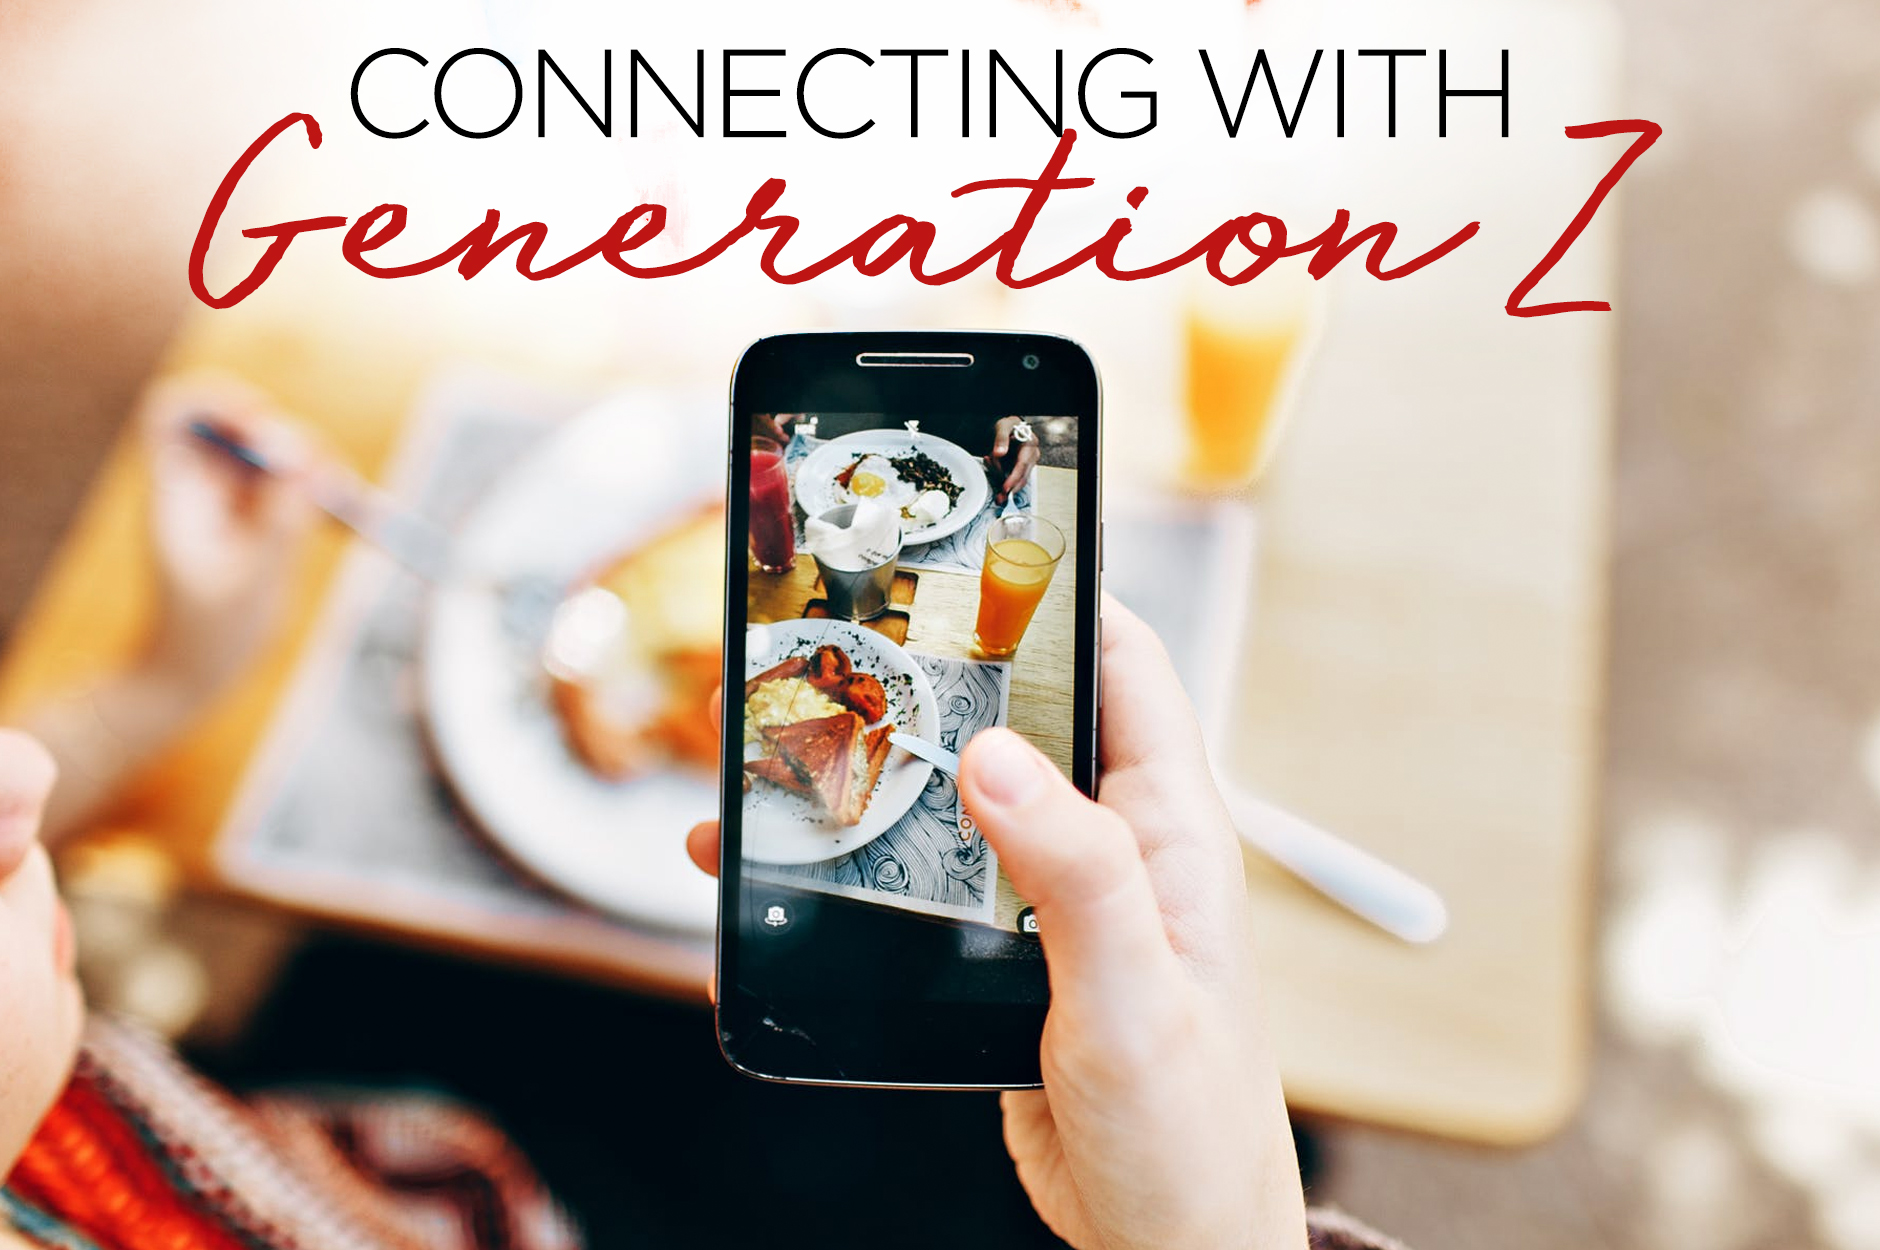 Connecting with Generation Z